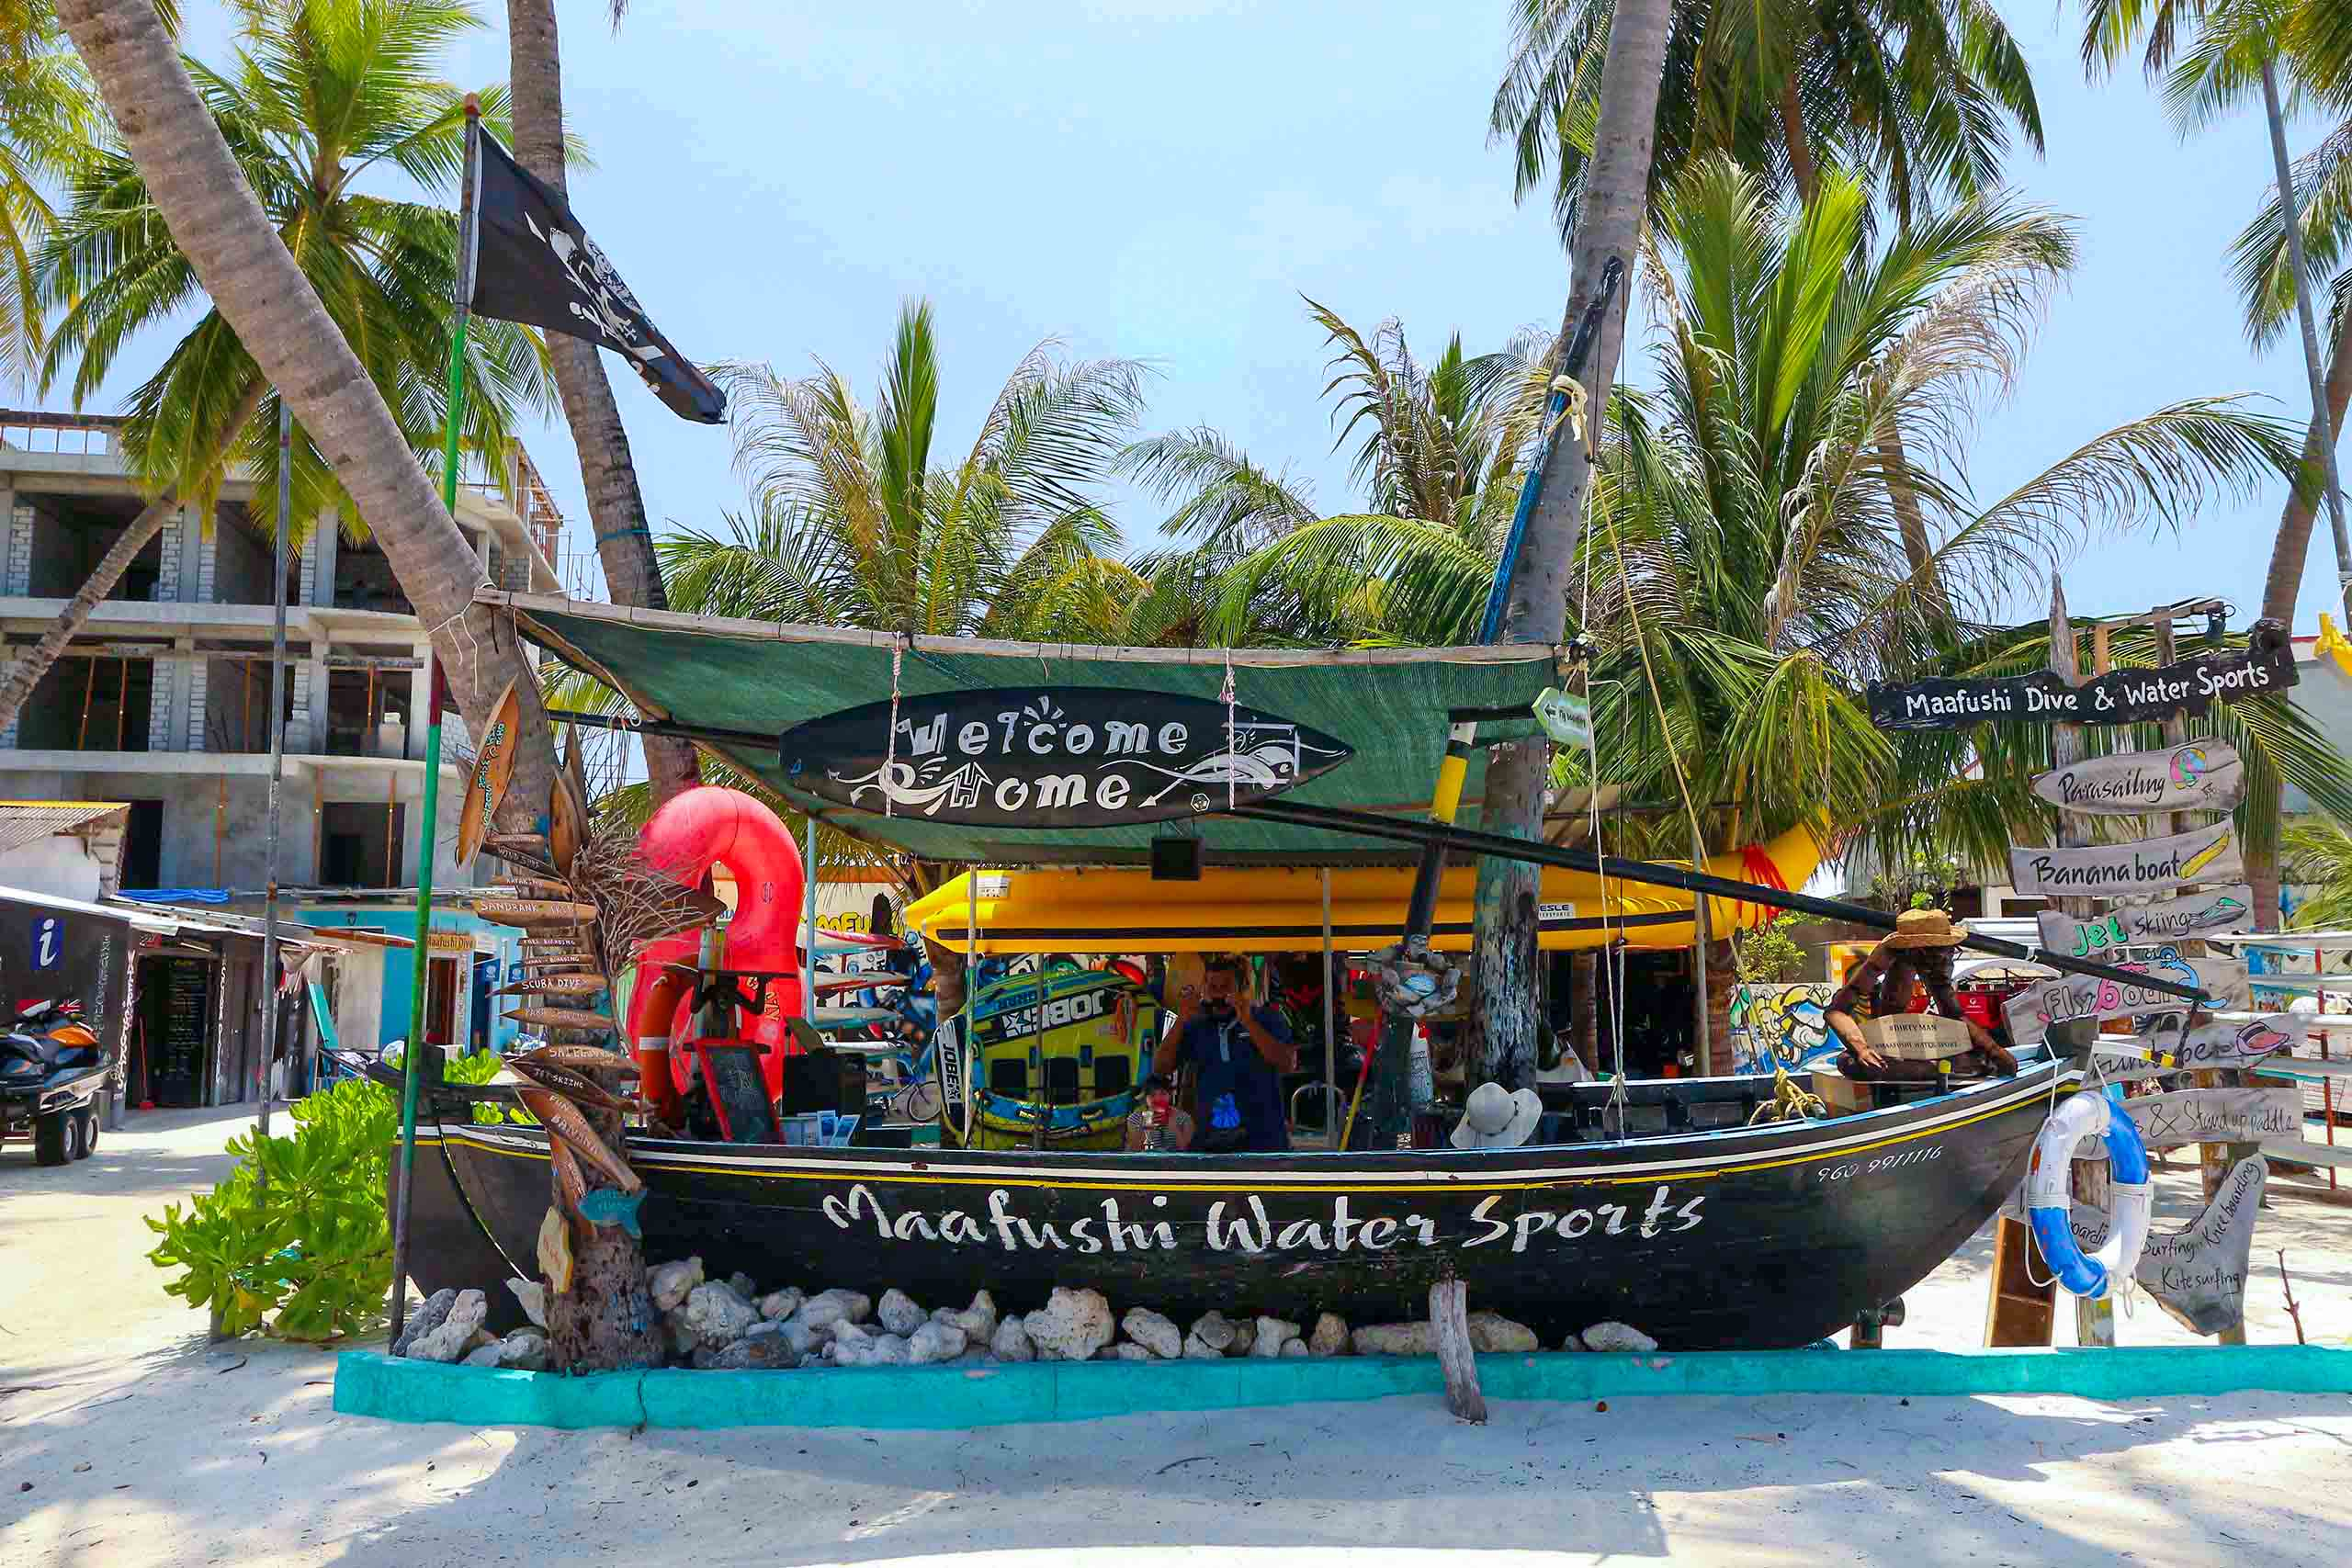 Watersport Maafushi 玩轉馬爾地夫